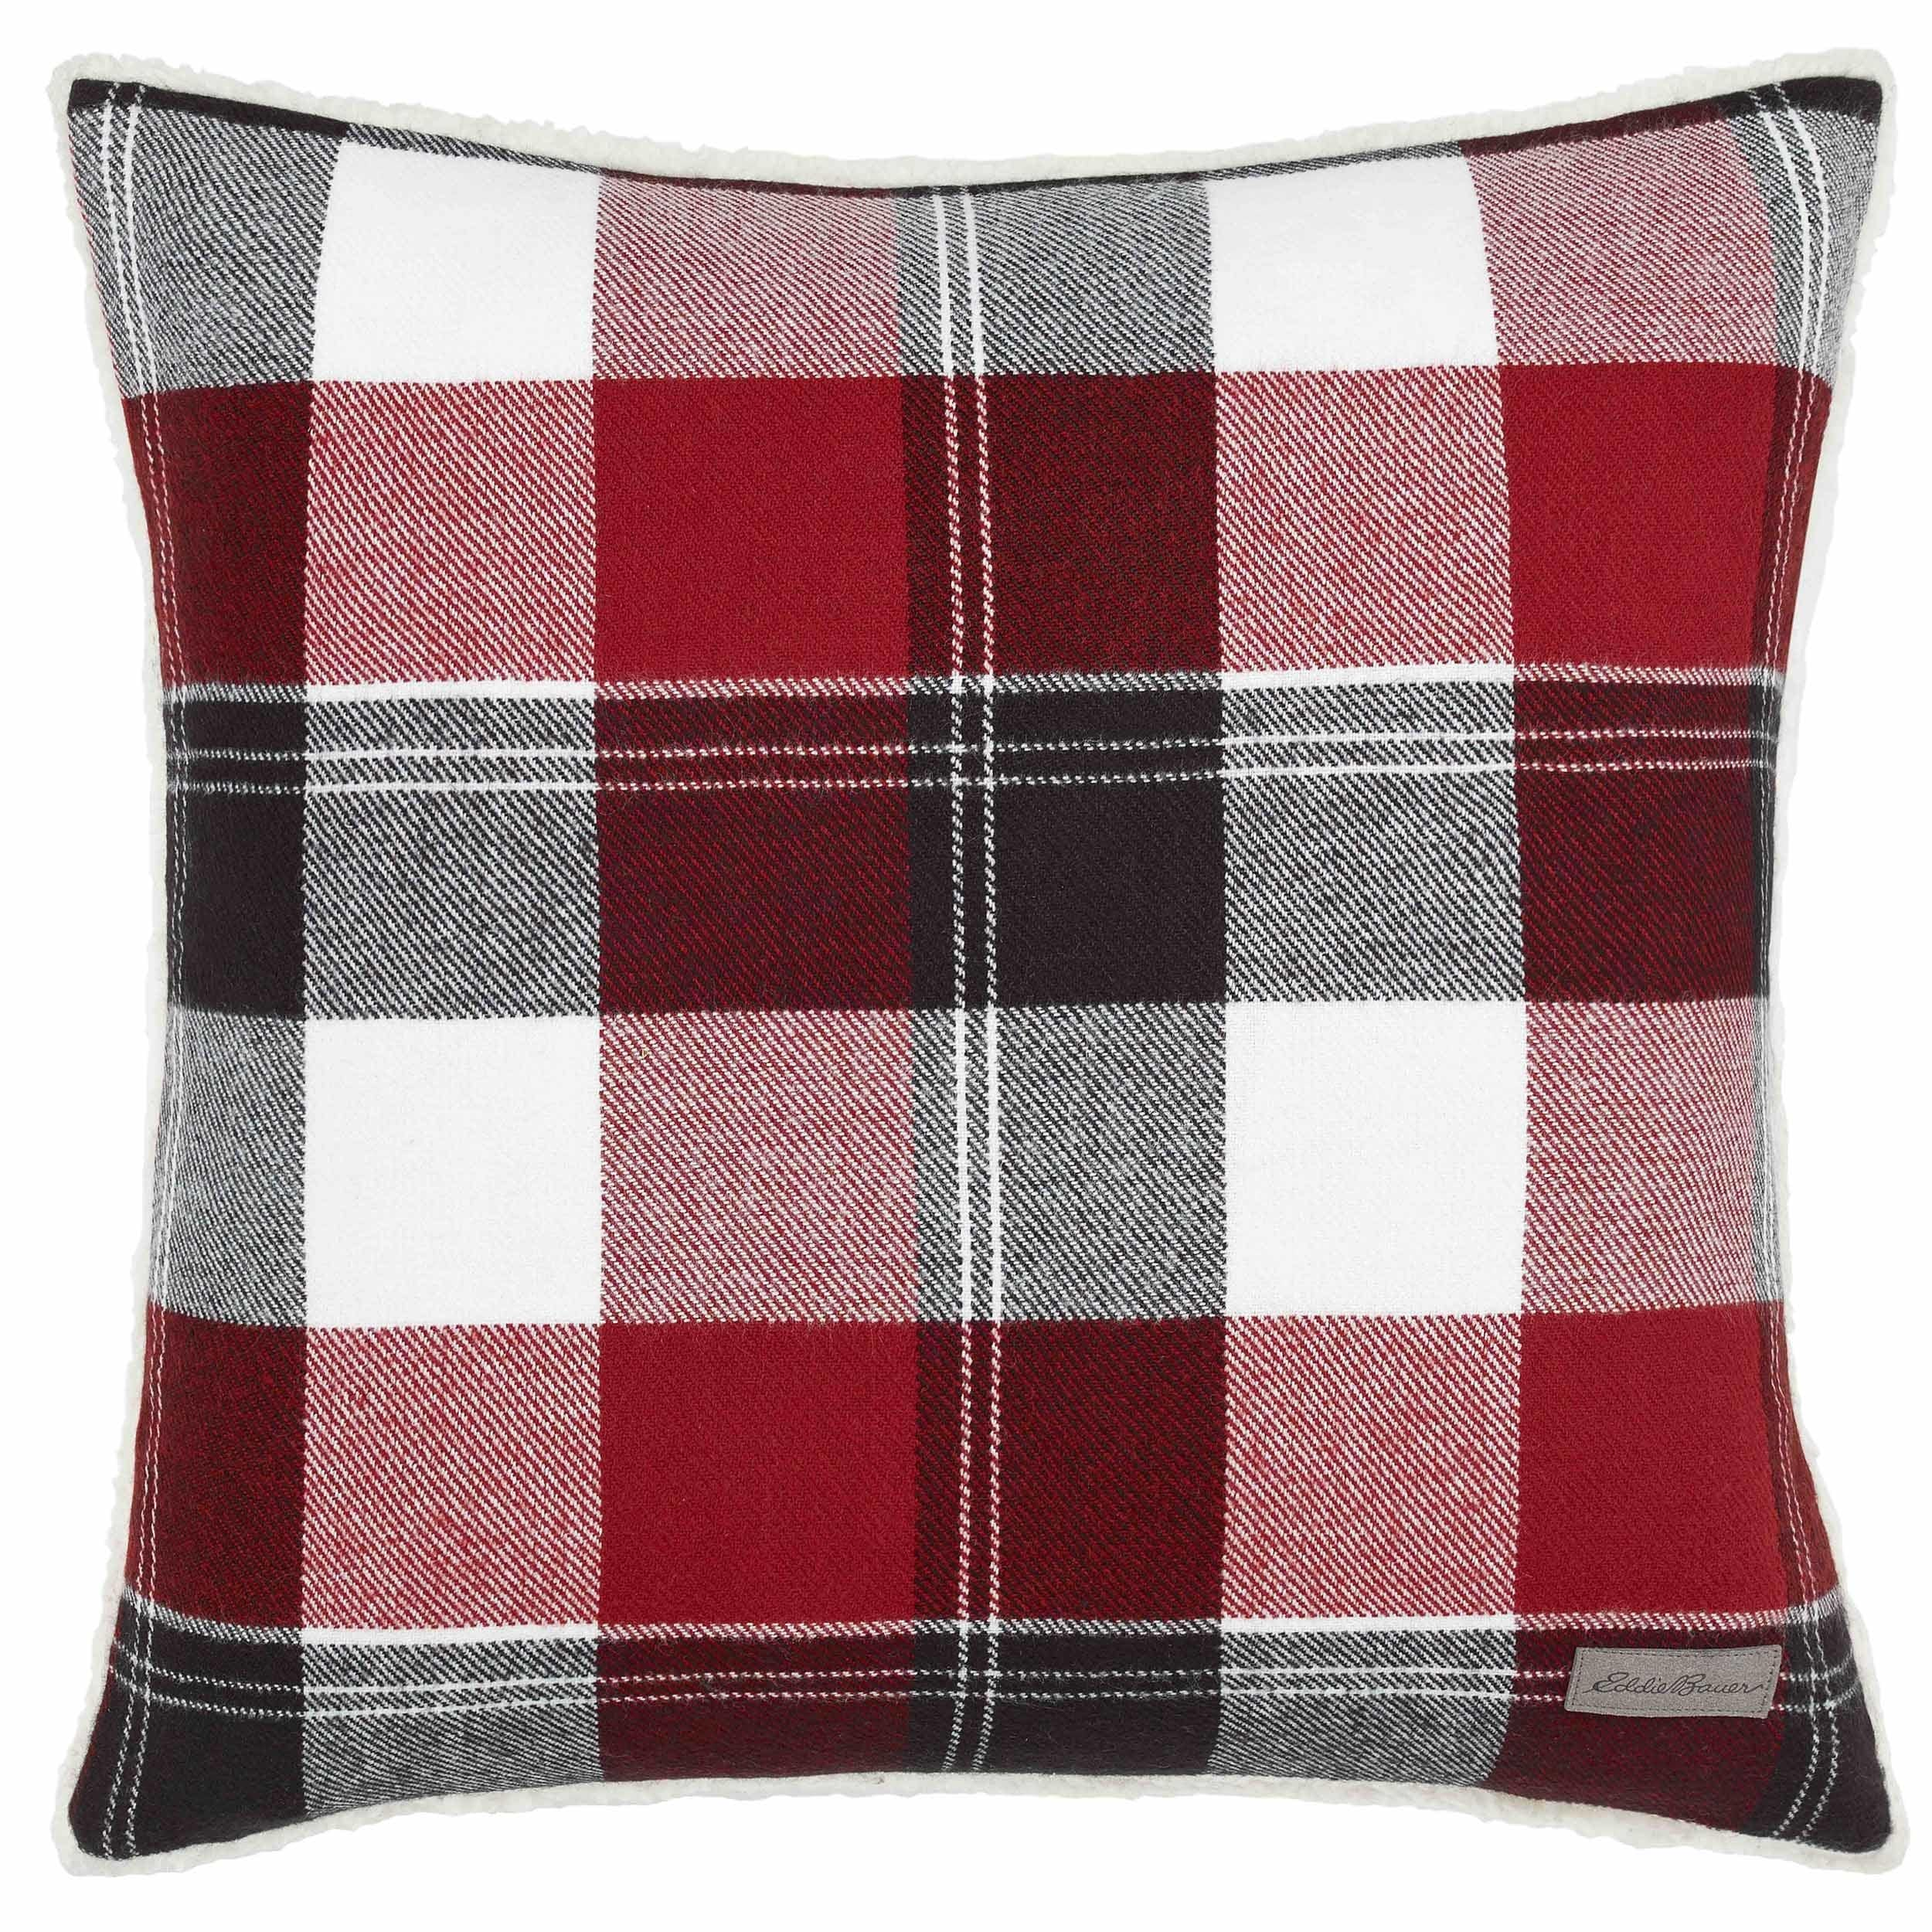 Eddie Bauer Lodge Red Throw Pillow Free Shipping On Orders Over  ~ Red Throw Pillows For Sofa